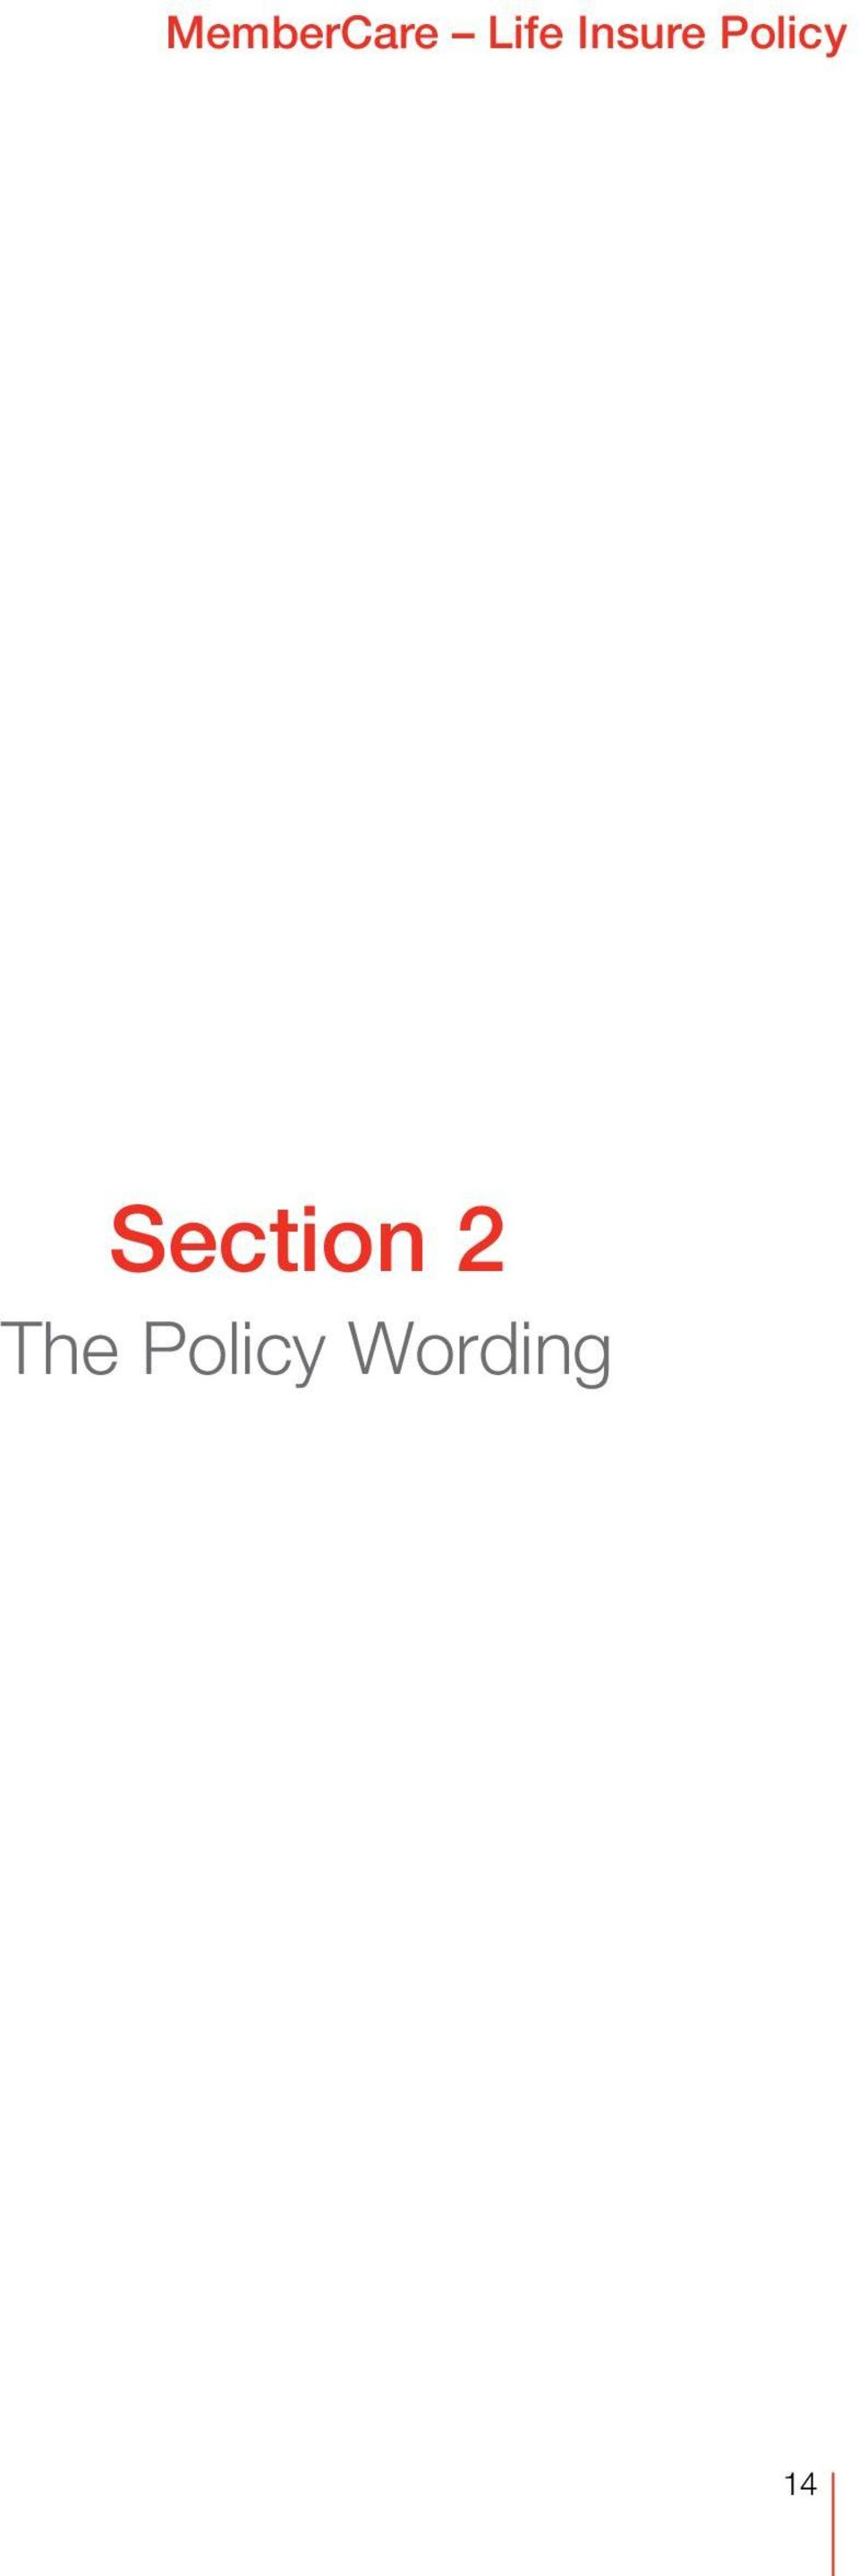 Section 2 The